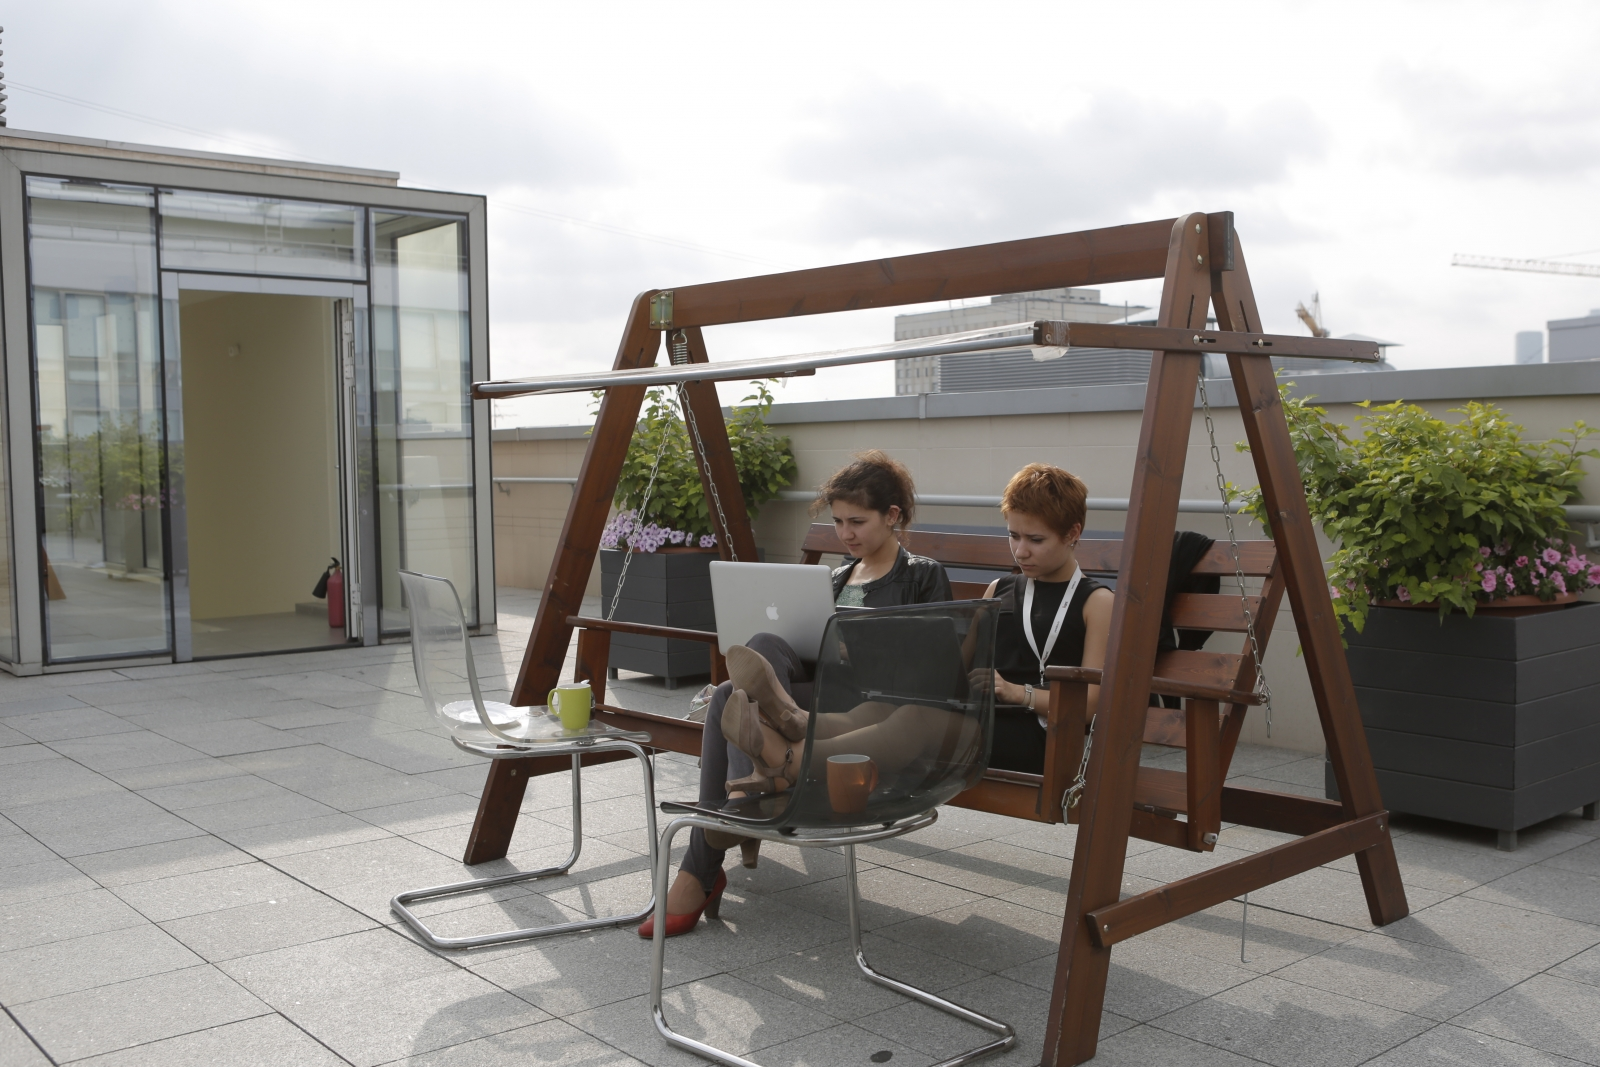 Yandex employees work on its roof top